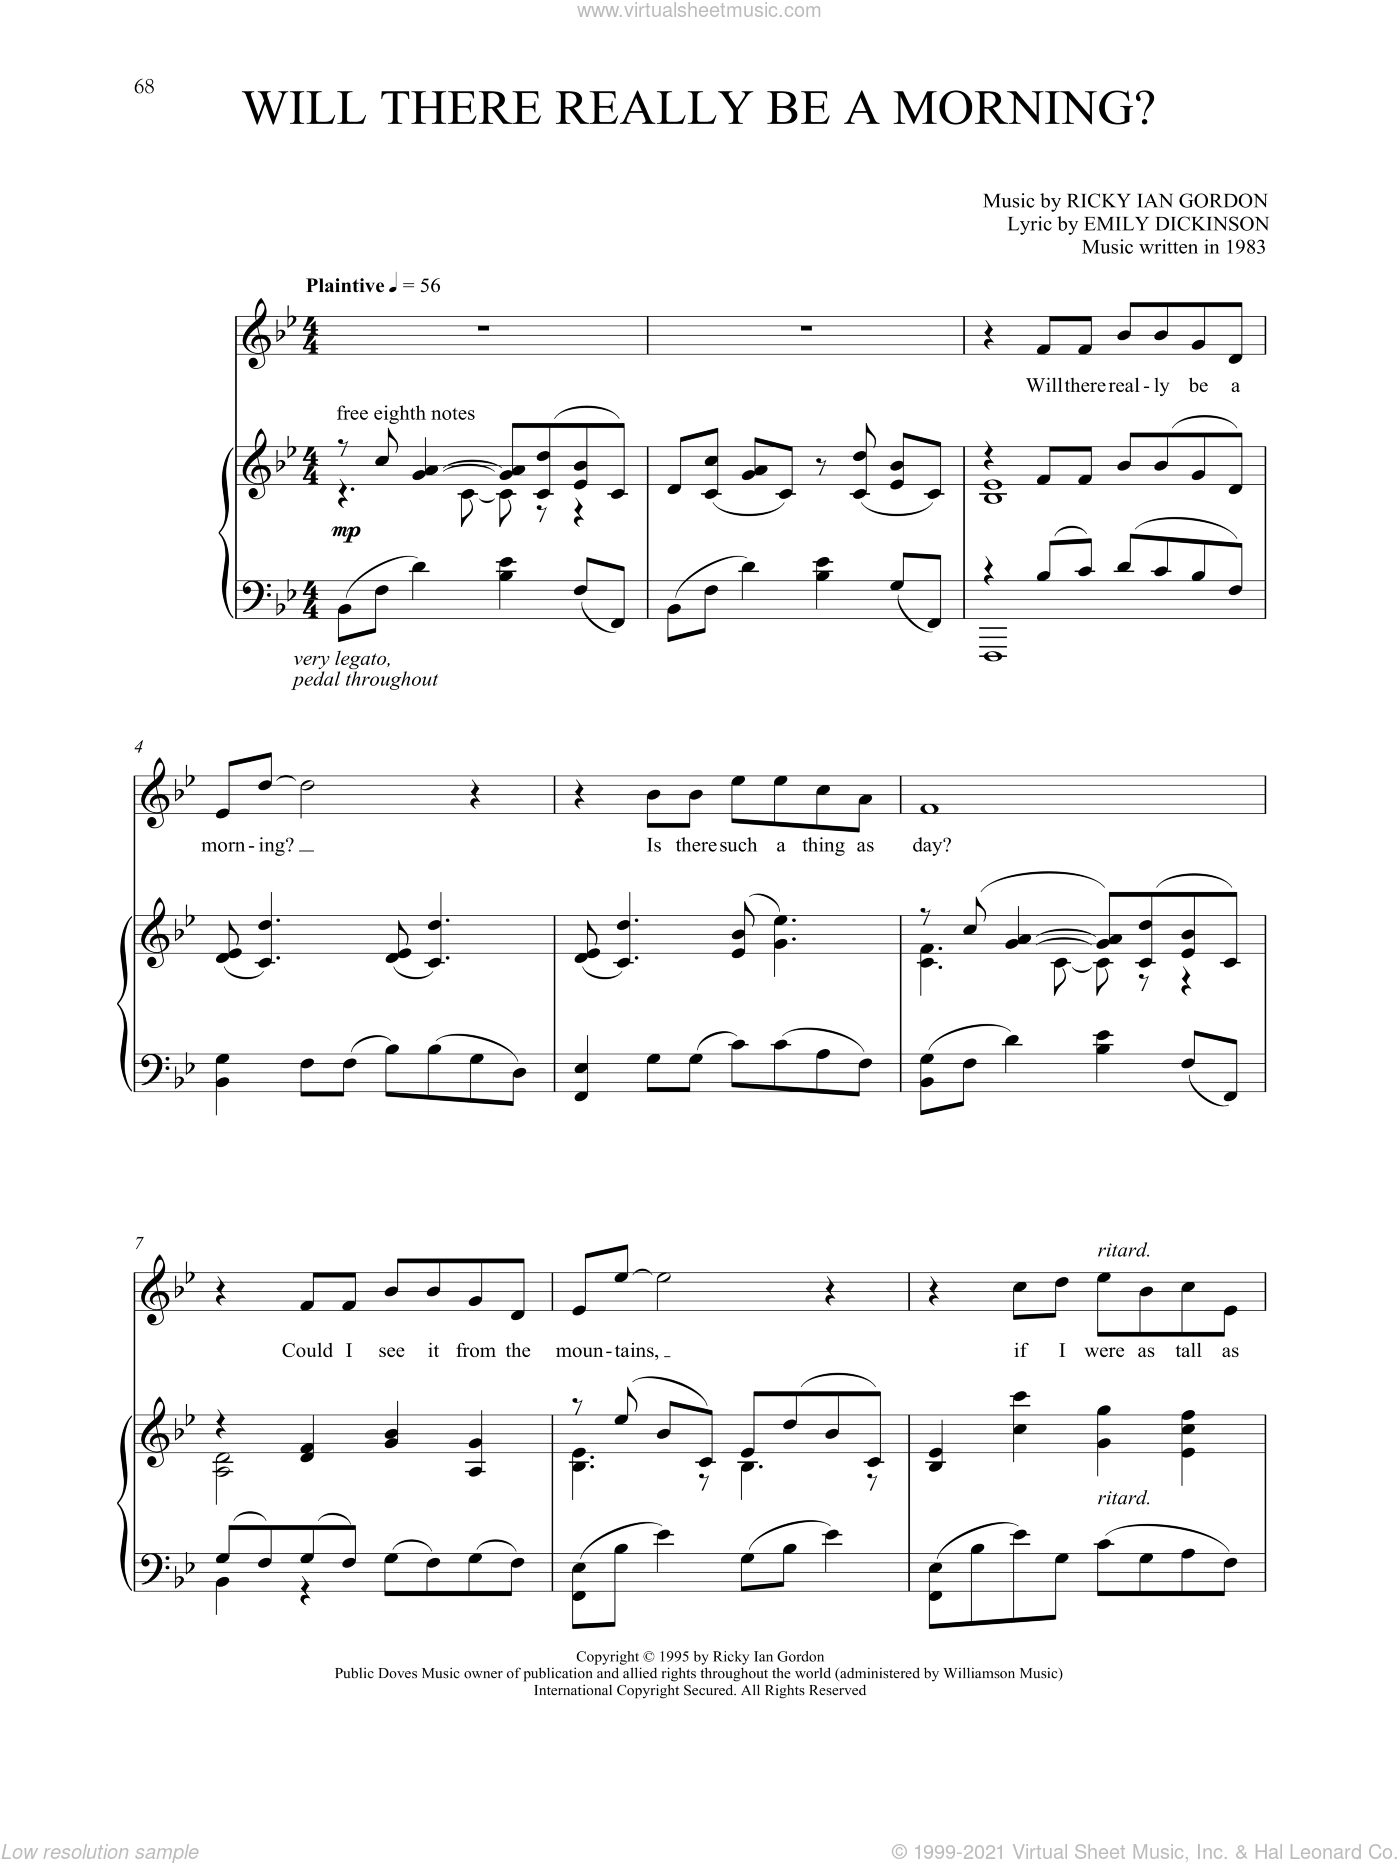 Will There Really Be A Morning? sheet music for voice and piano by Ricky Ian Gordon and Emily Dickinson, classical score, intermediate skill level